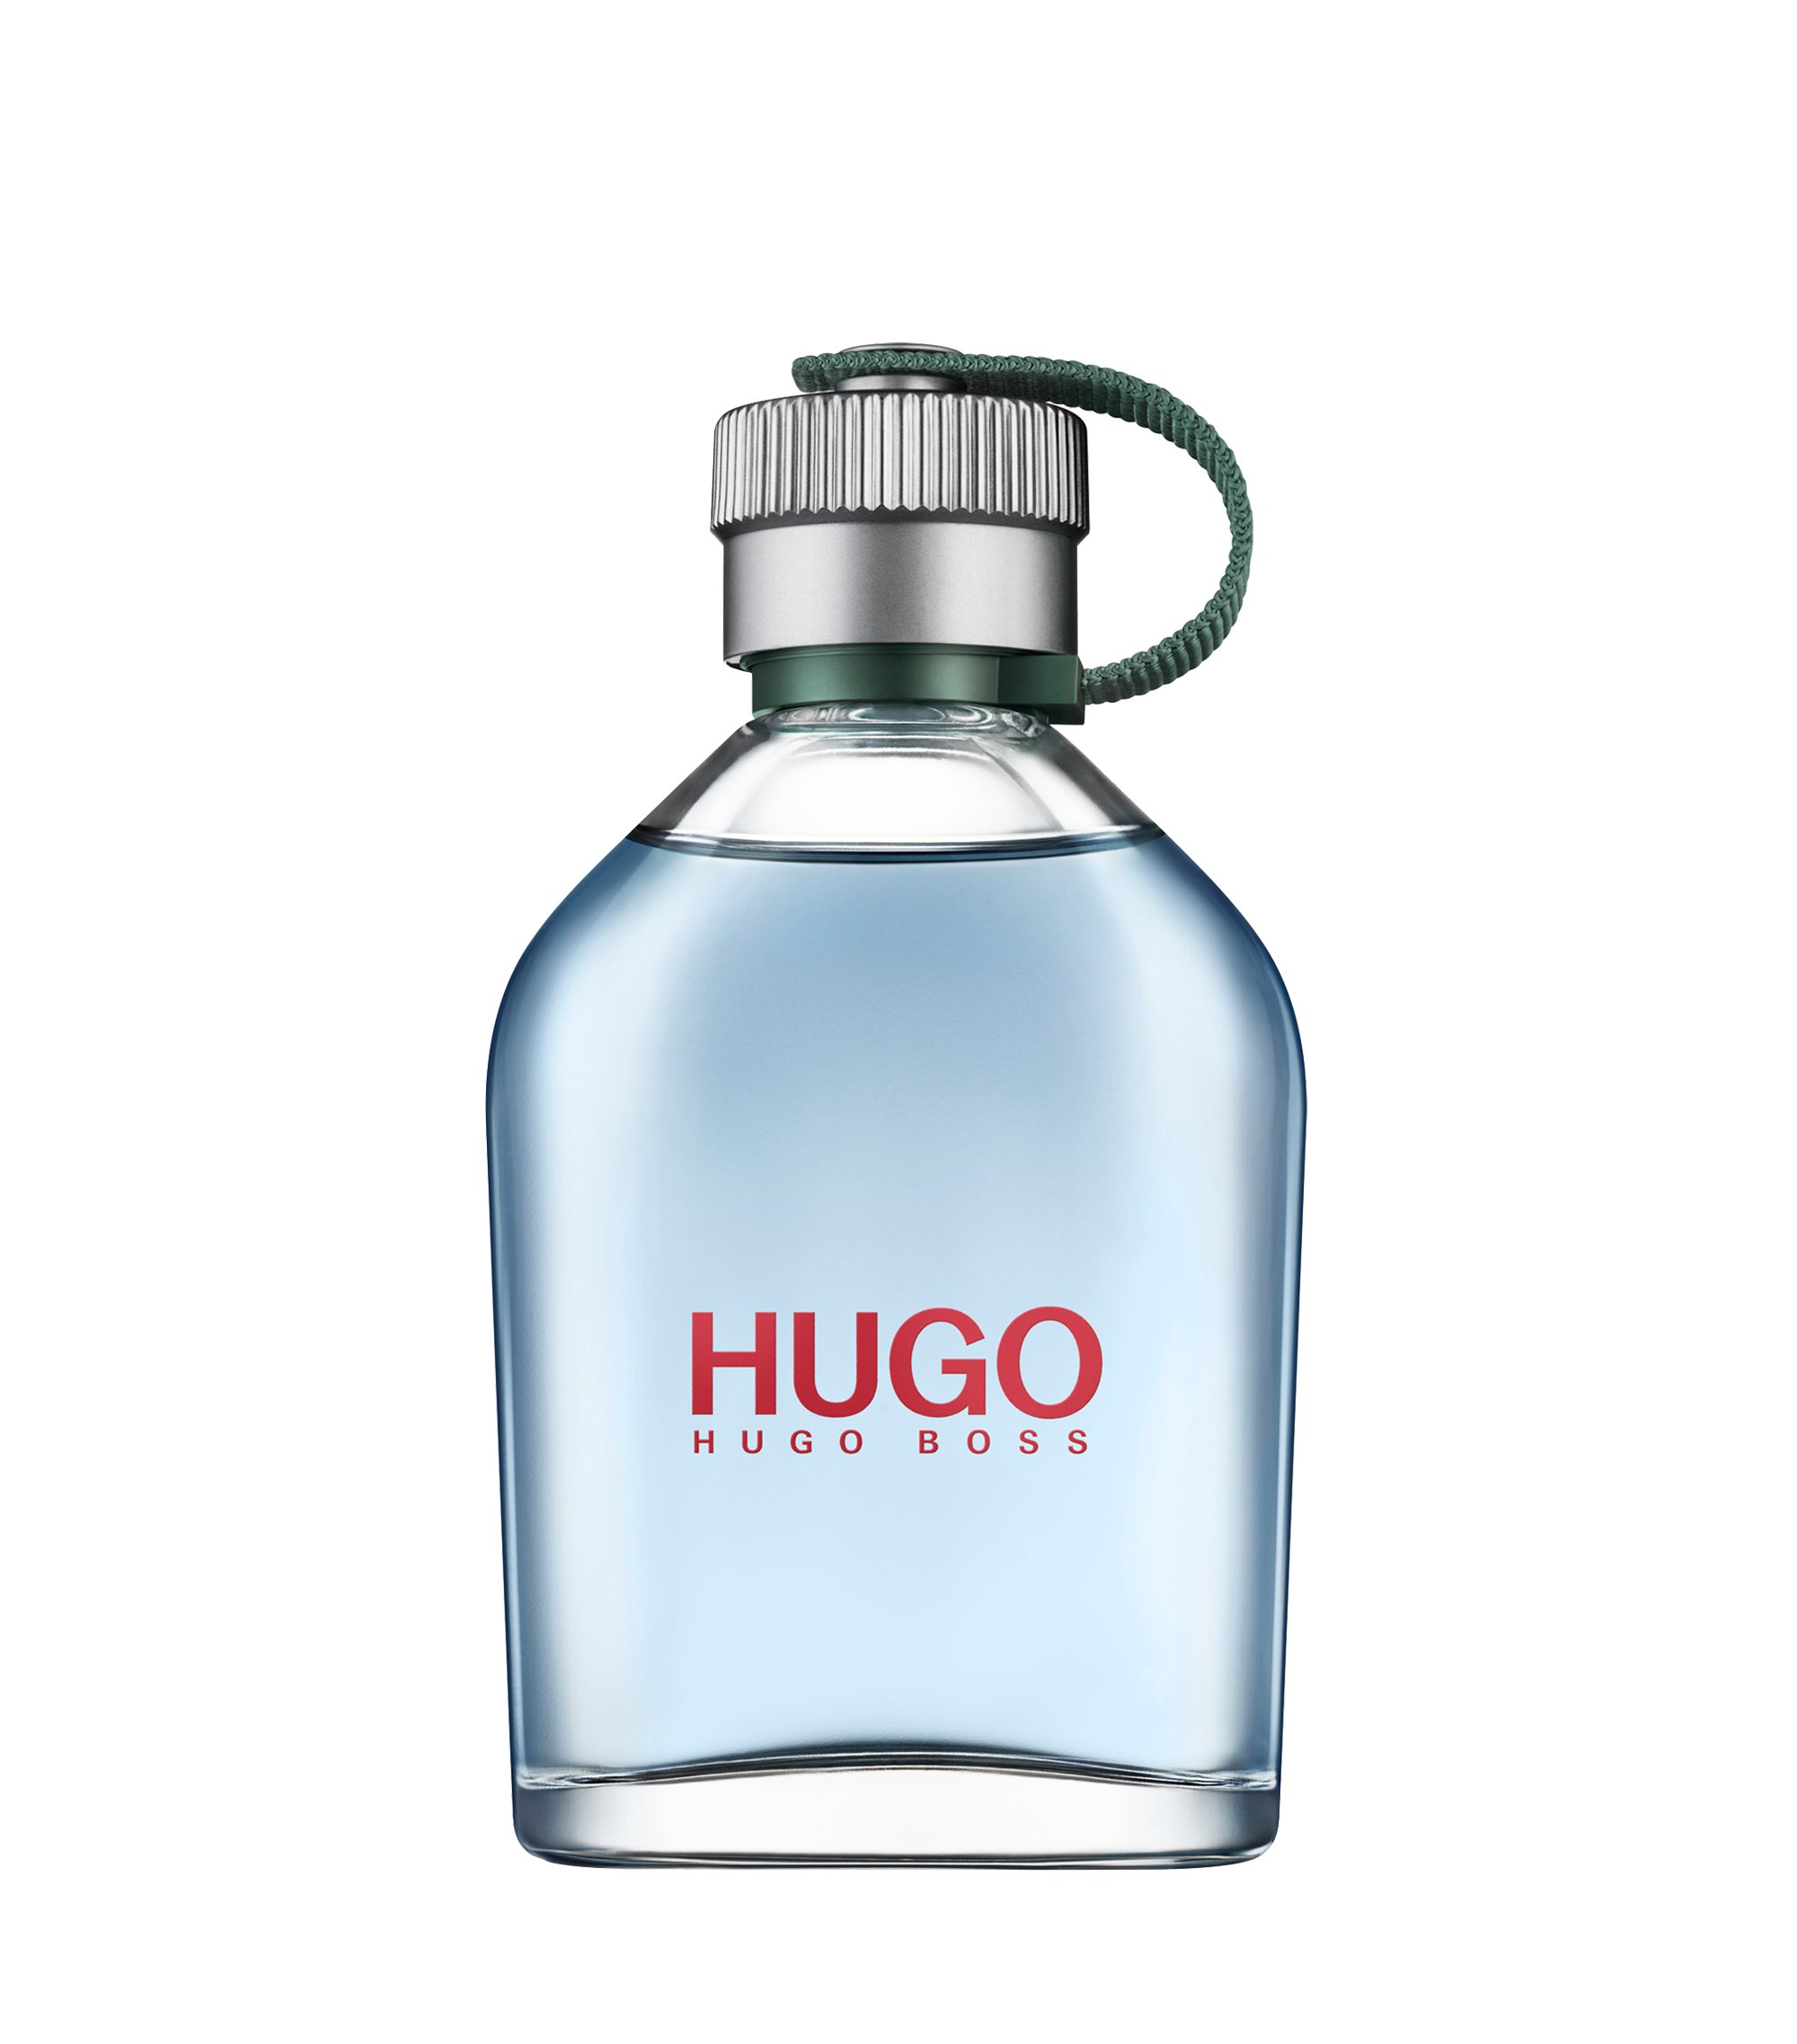 Eau de toilette HUGO Man de 125 ml , Assorted-Pre-Pack